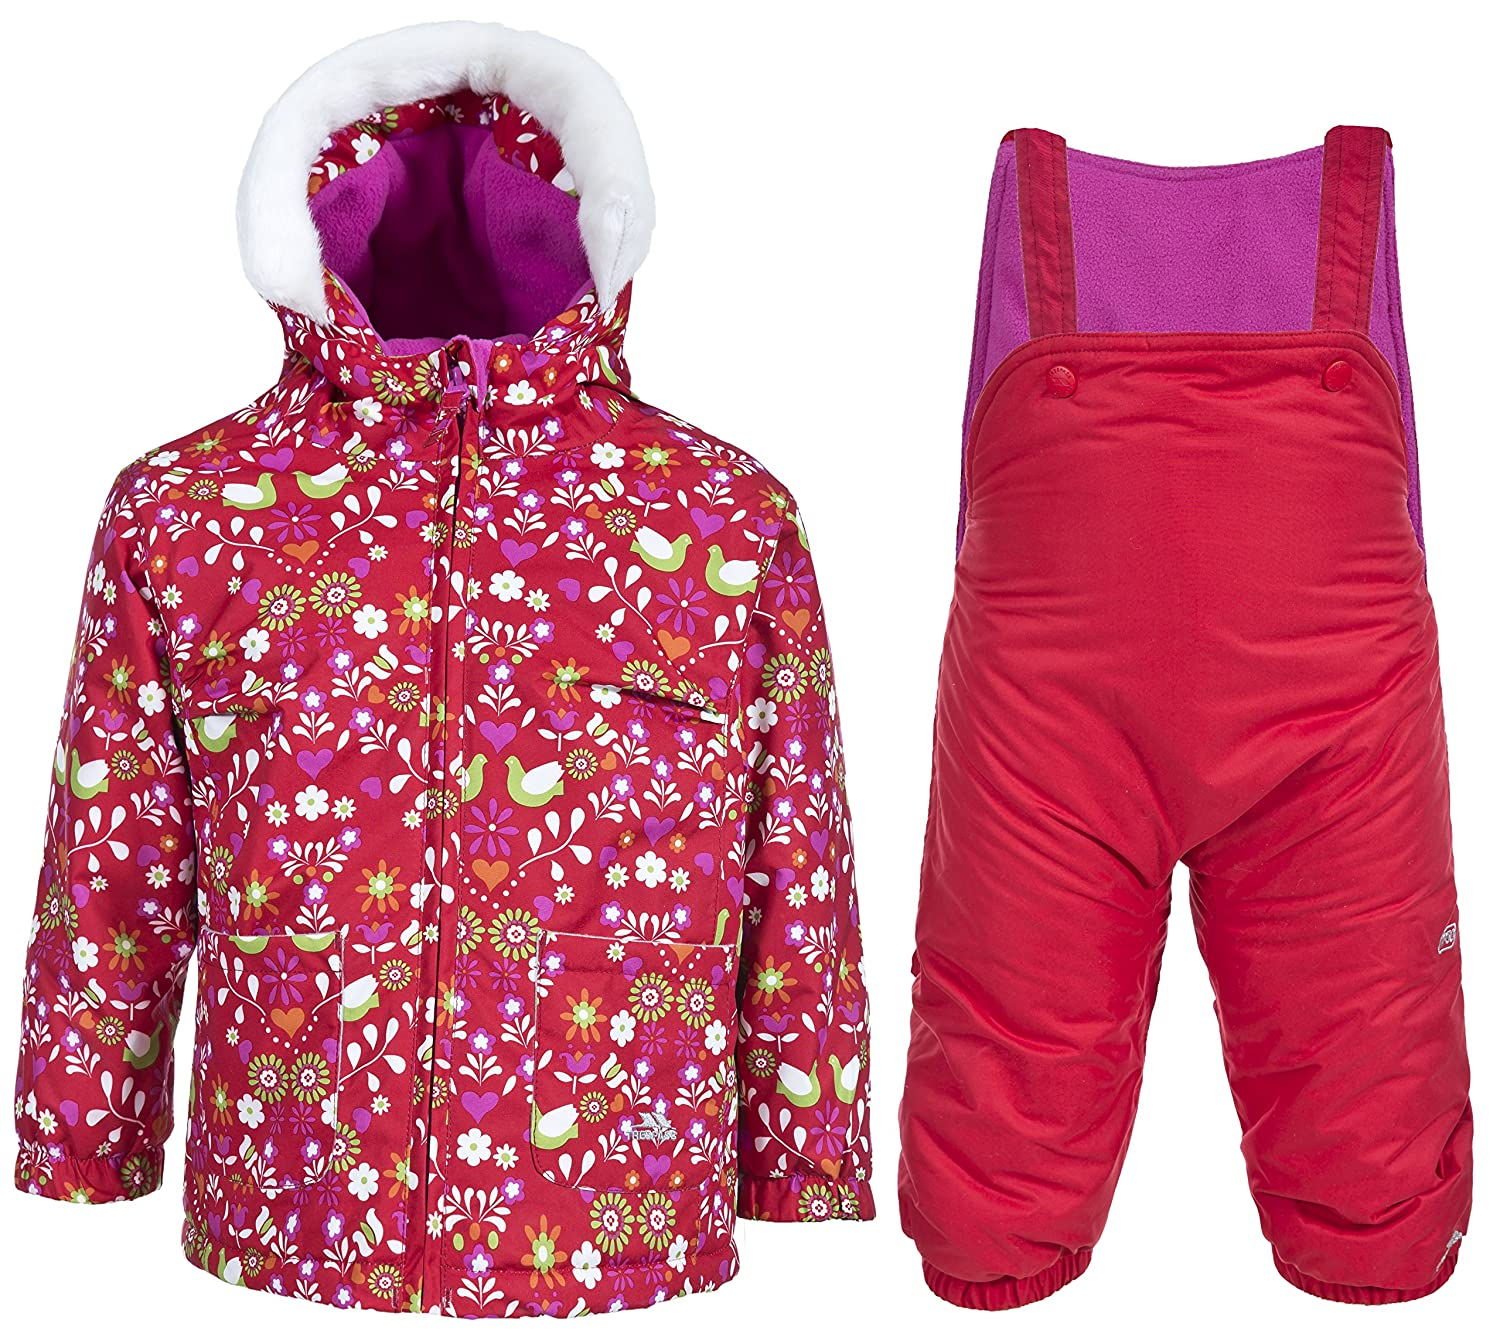 44a877ad0944 Amazon.com   Trespass Kids Squeezy Ski Suit   Clothing